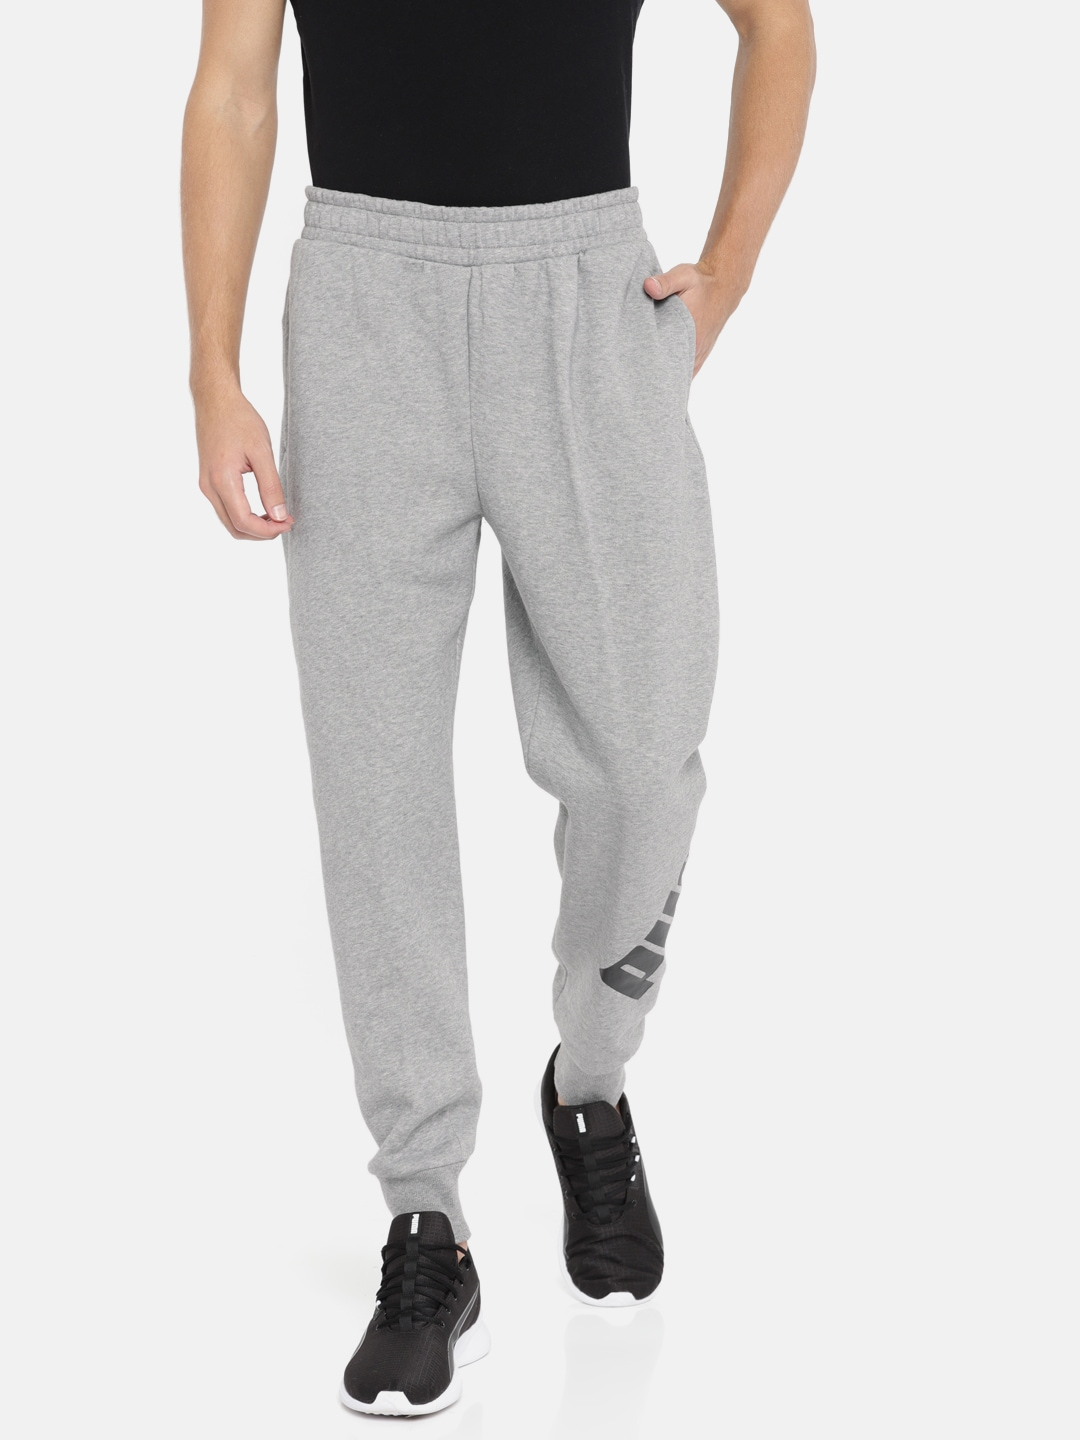 305a56343e34 Puma Track Pants - Buy Puma Track Pants Online in India